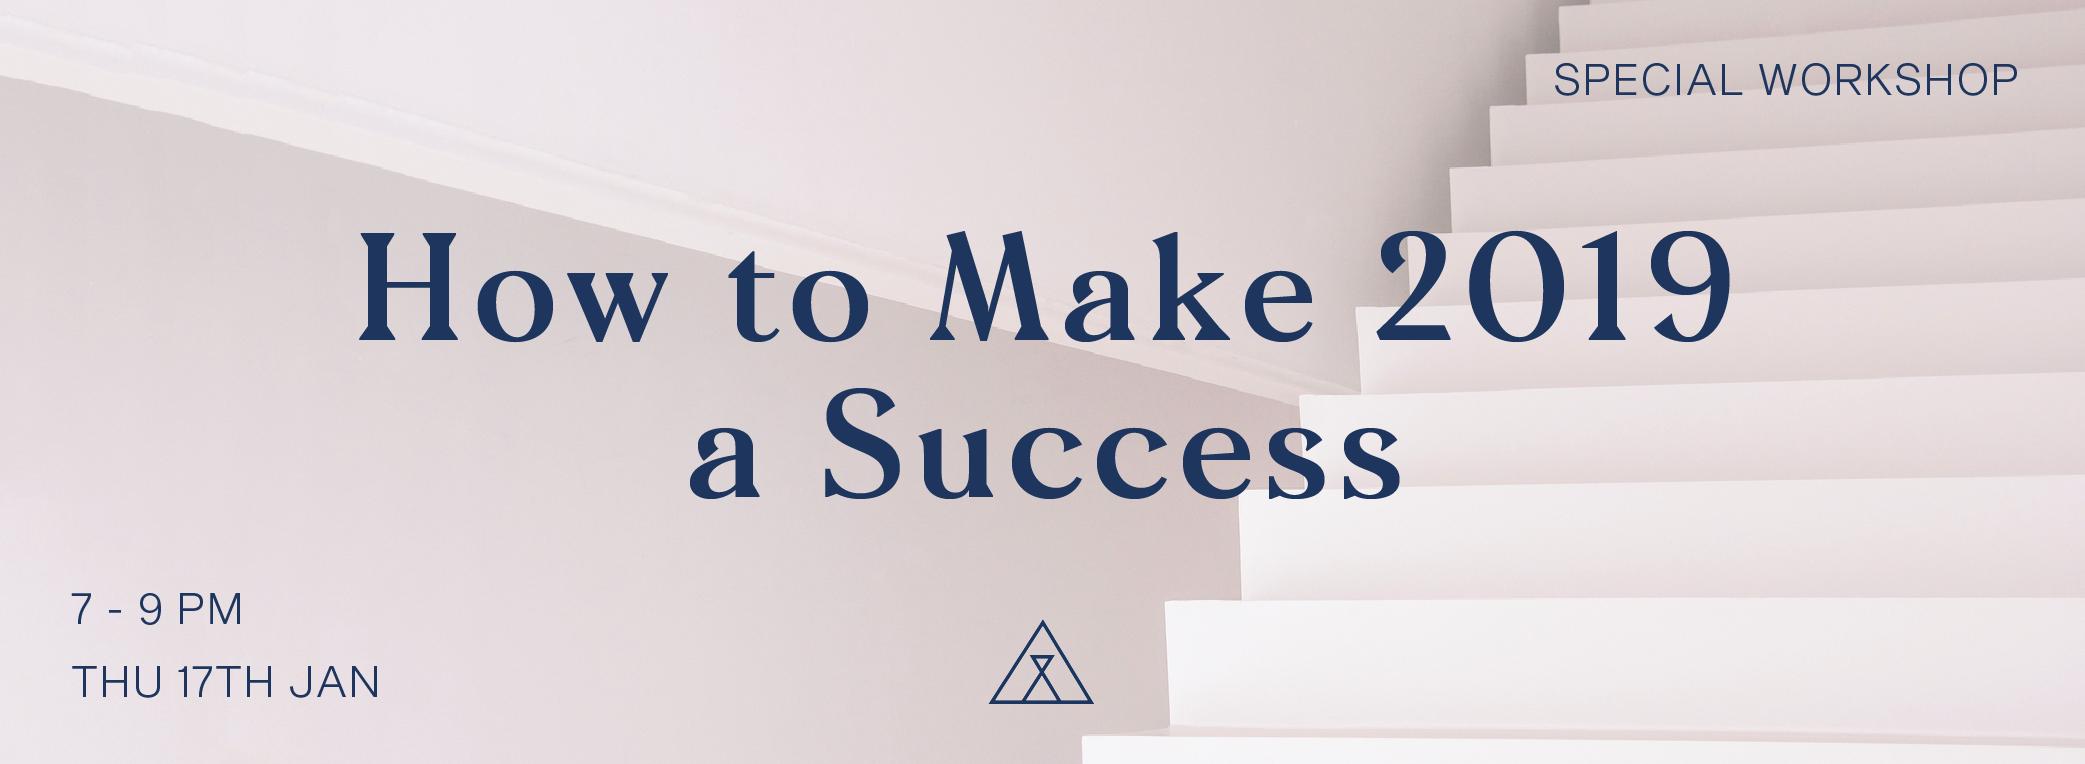 HOW TO MAKE 2019 A SUCCESS_Web Header